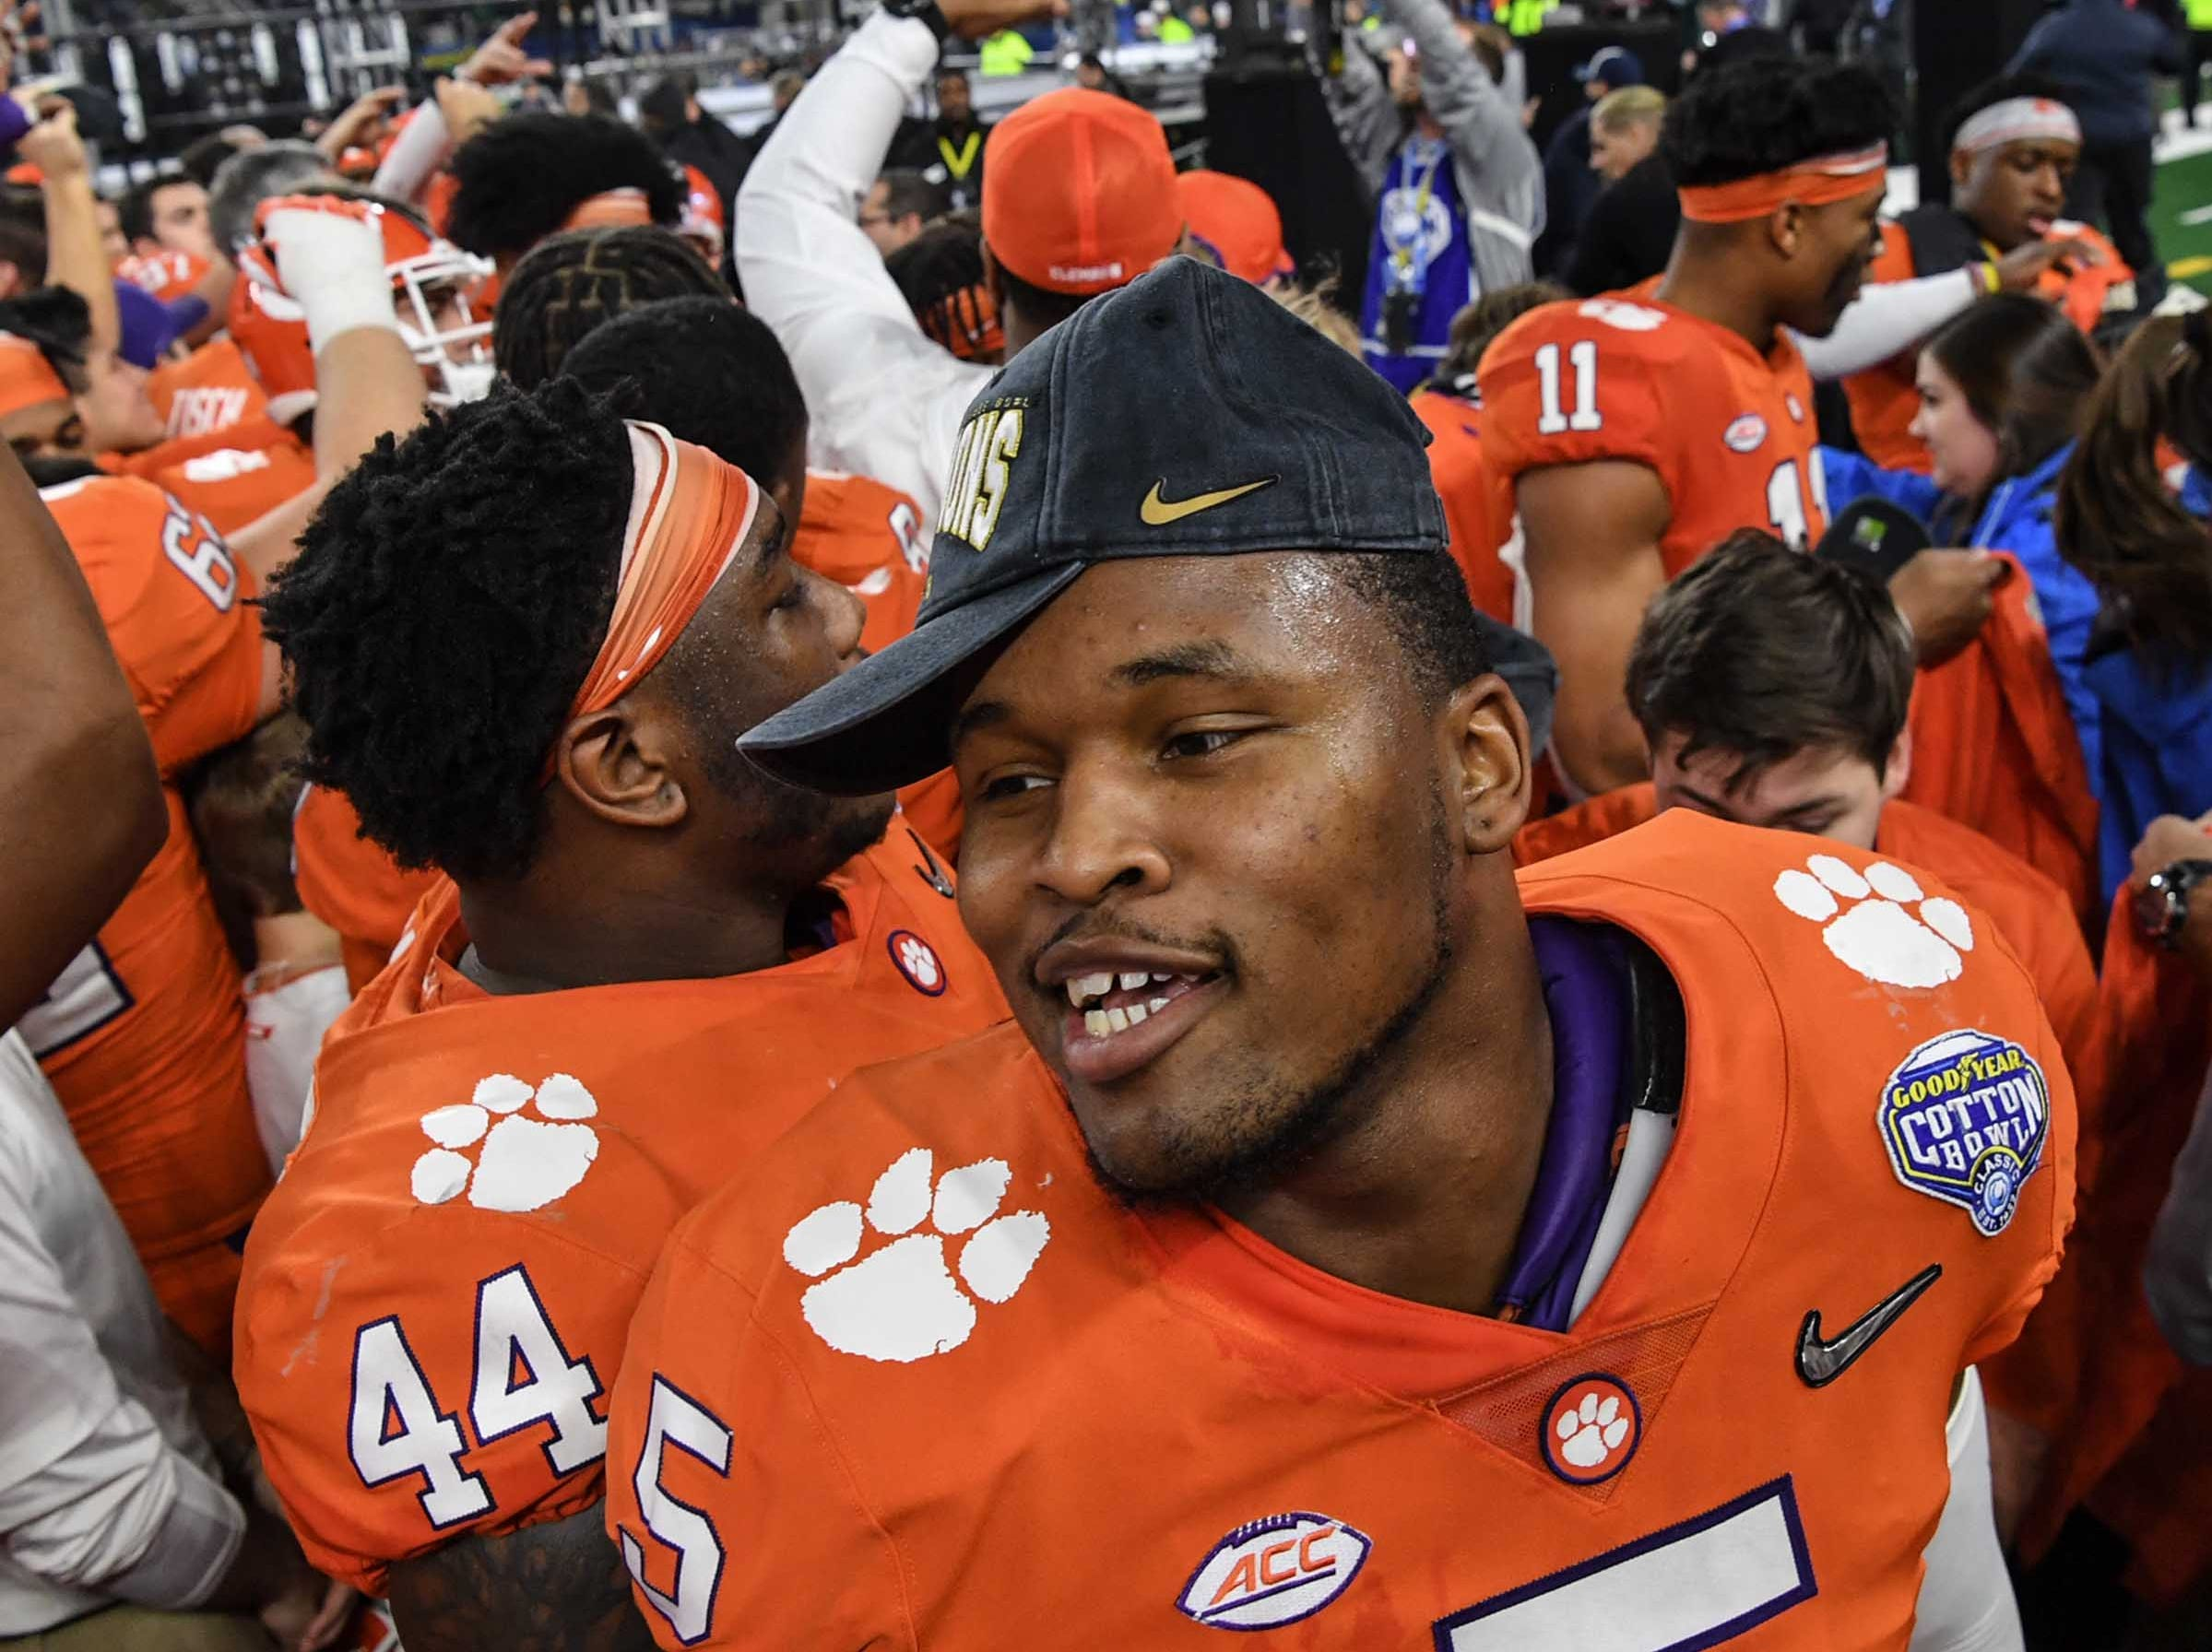 Clemson linebacker Shaq Smith (5) celebrates with teammates after a 30-3 win over Notre Dame in the College Football Playoff Semifinal at the Goodyear Cotton Bowl Classic at AT&T Stadium in Arlington, Texas Saturday, December 29, 2018.